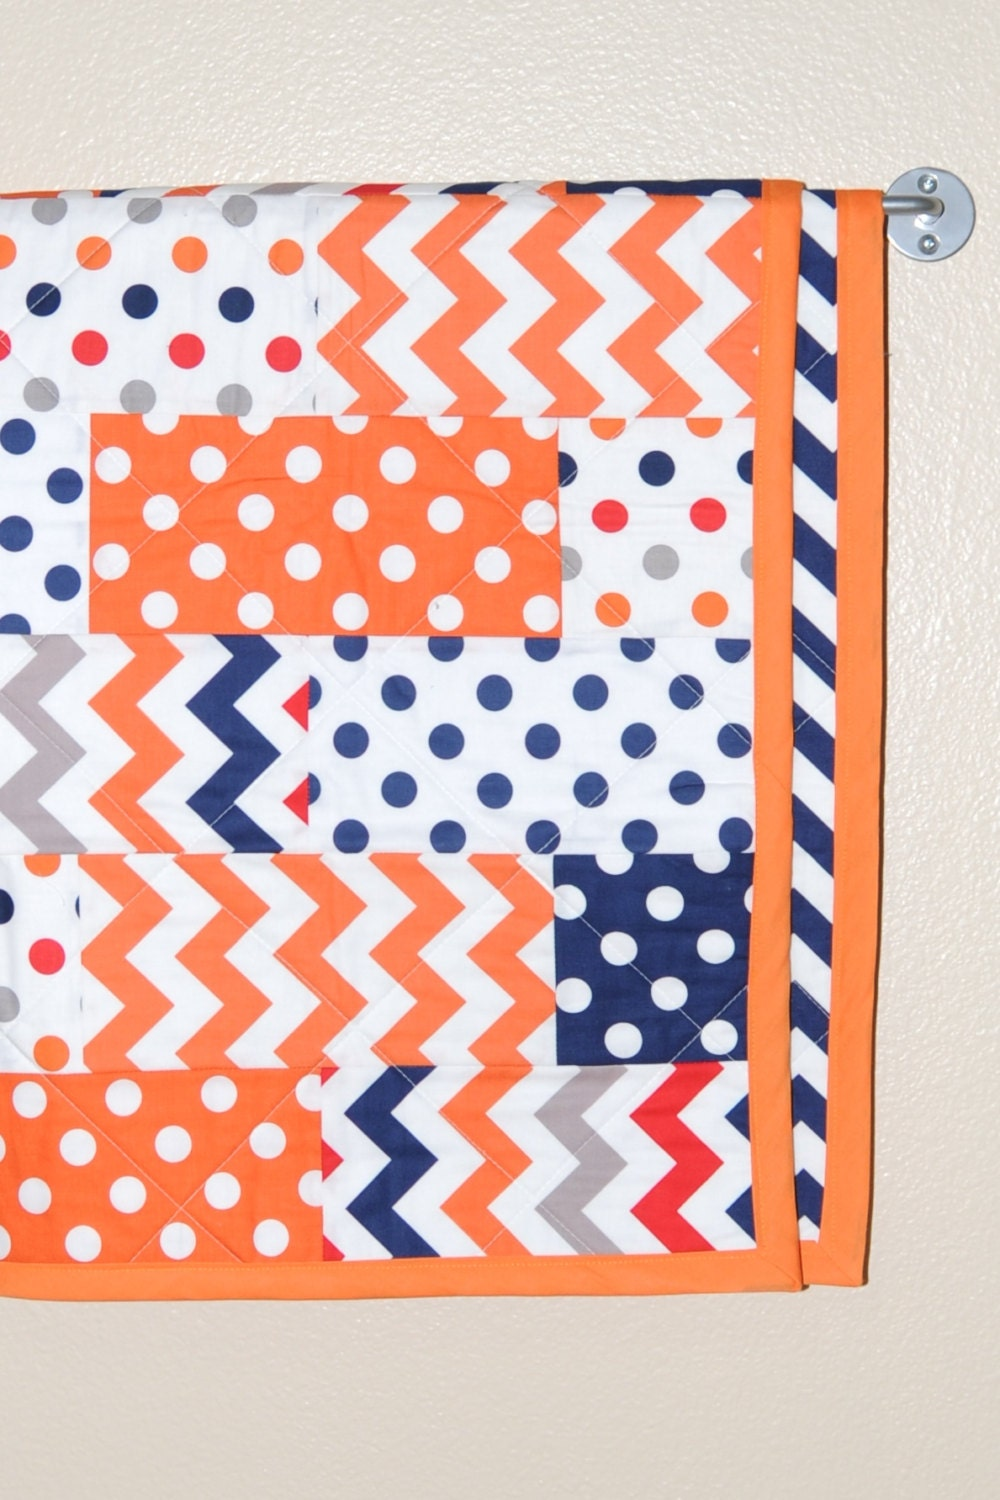 Boy Quilt In Navy Orange Red And Gray Crib Quilt With Navy